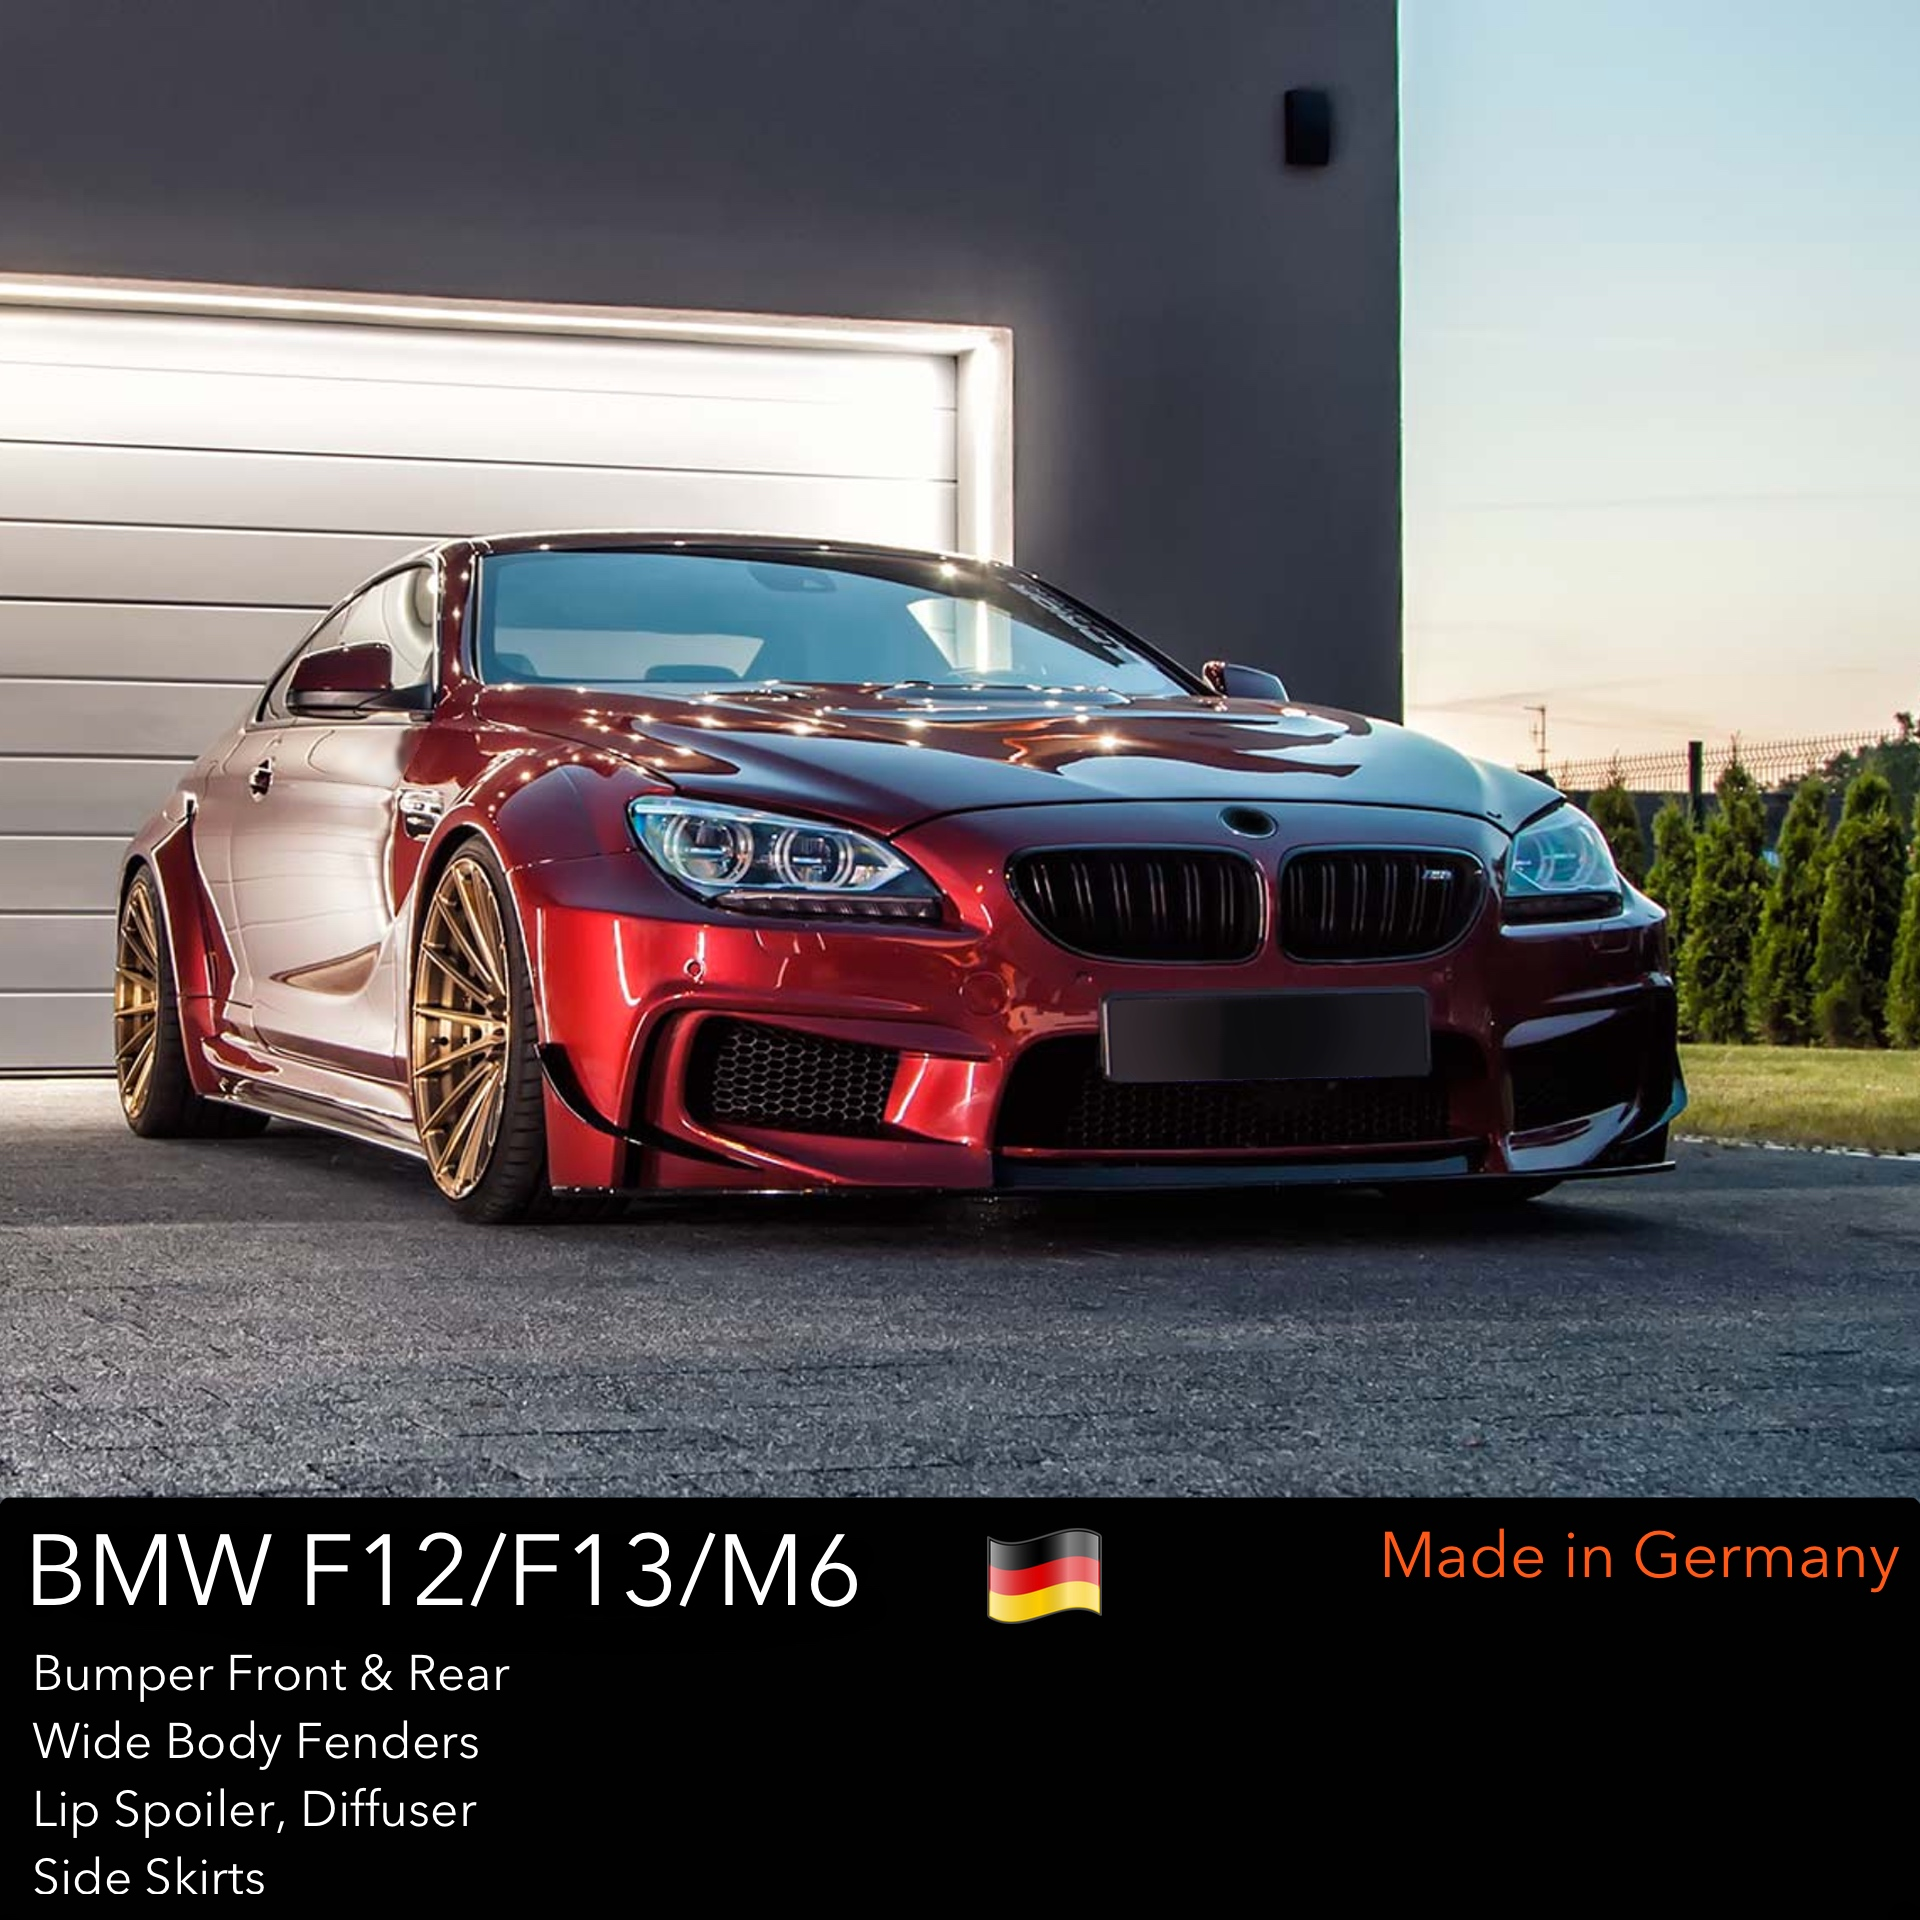 DMC F12 F13 M6 Wide Body: Carbon Fiber Body Kit for the BMW